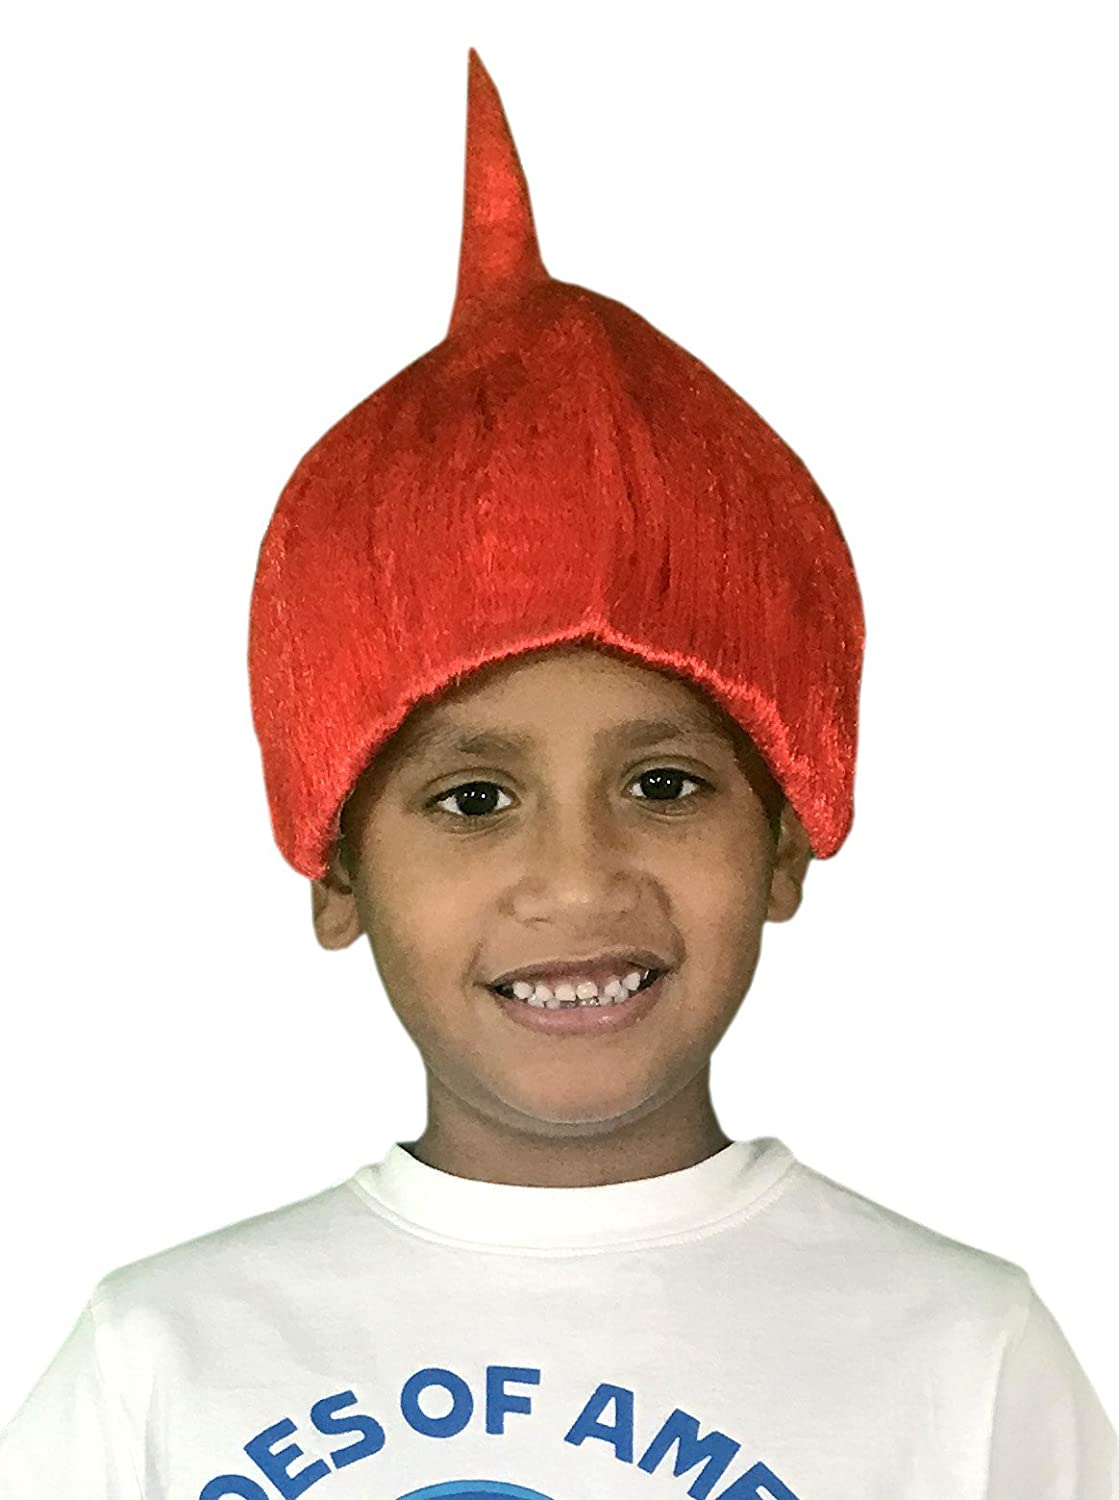 KINREX Red Wacky Wig - Hairy Wig - Wigs for Kids and Teens